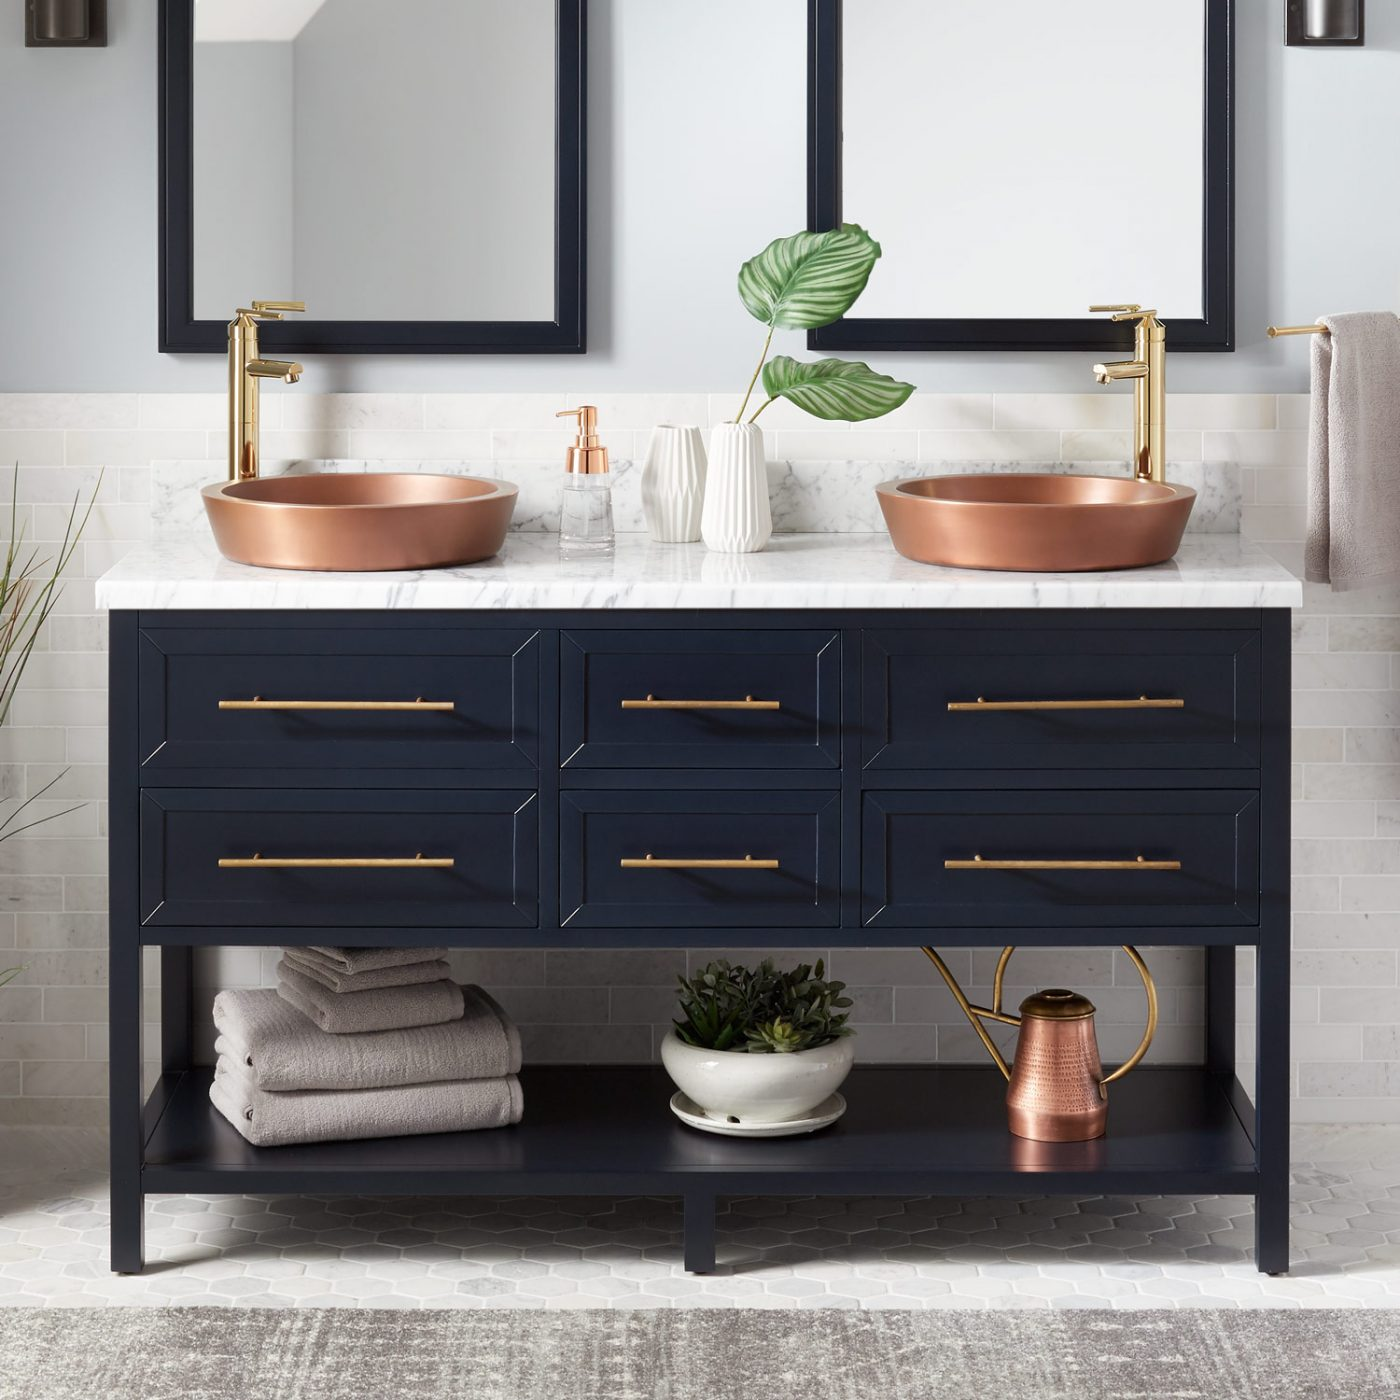 Farmhouse Style Bathroom Sink Faucets Image Of Bathroom And Closet